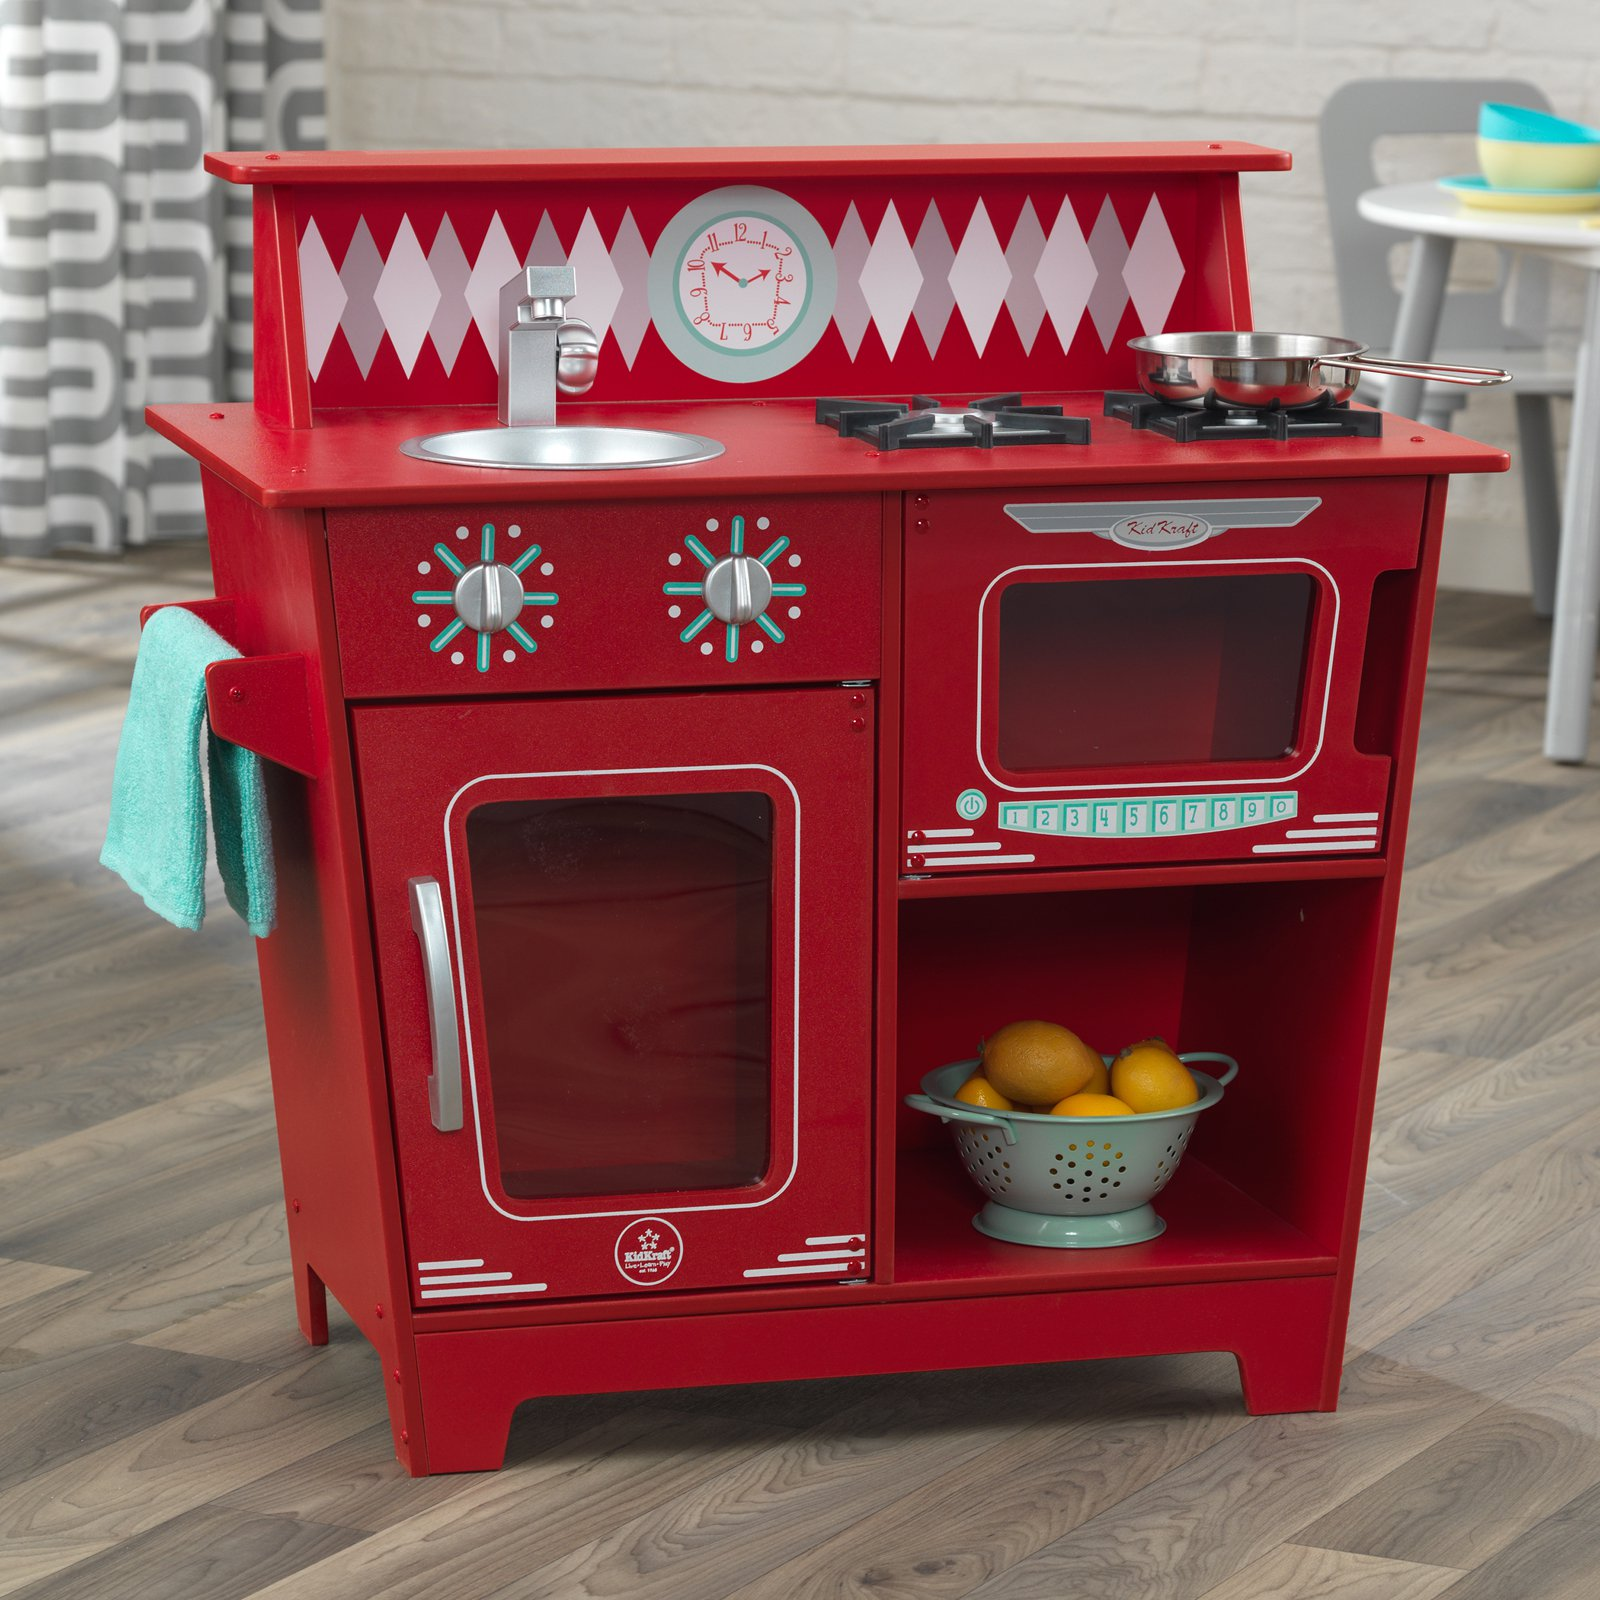 KidKraft Classic Kitchenette, Red by KidKraft